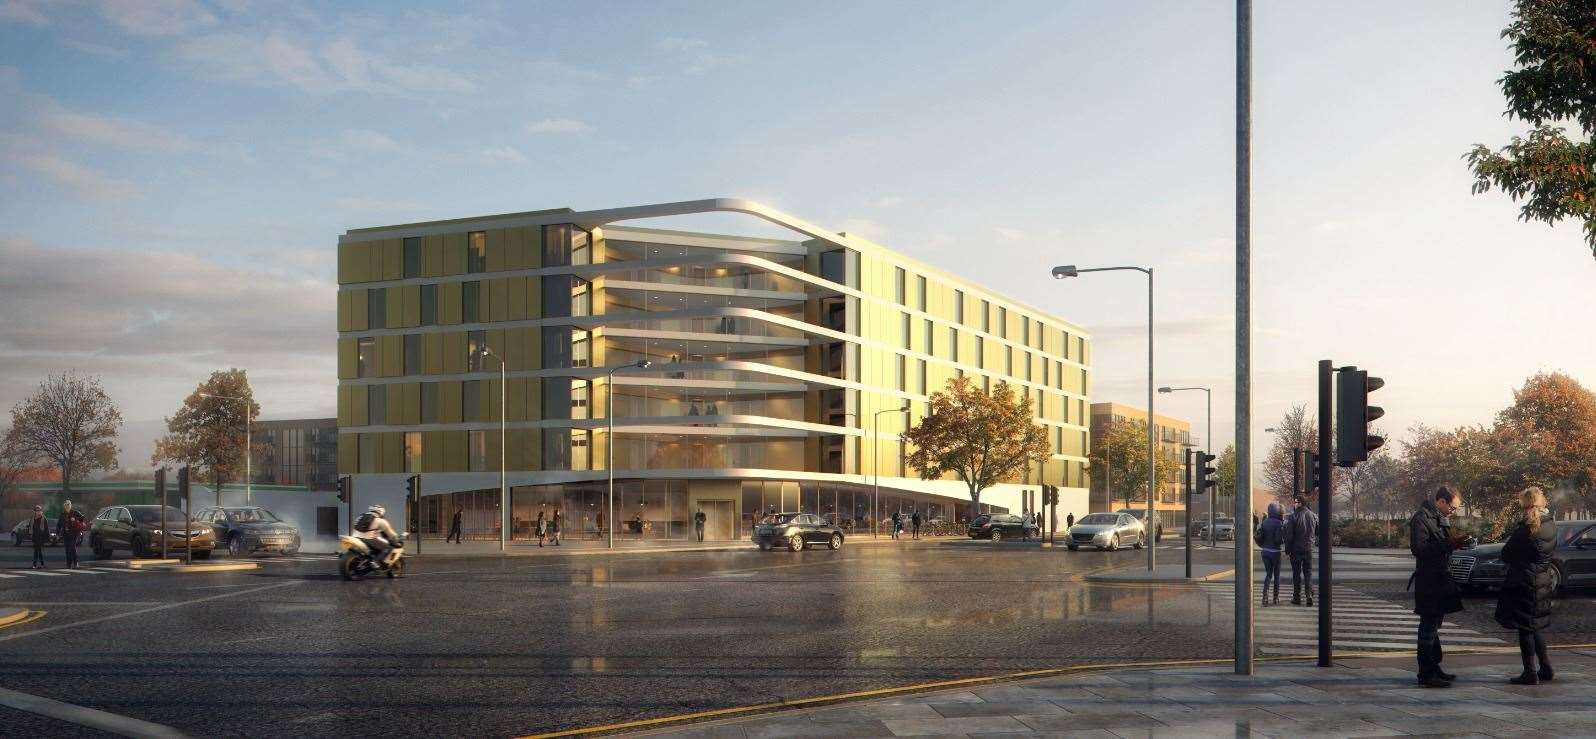 This image released to KentOnline shows how the 140-bedroom hotel is set to look